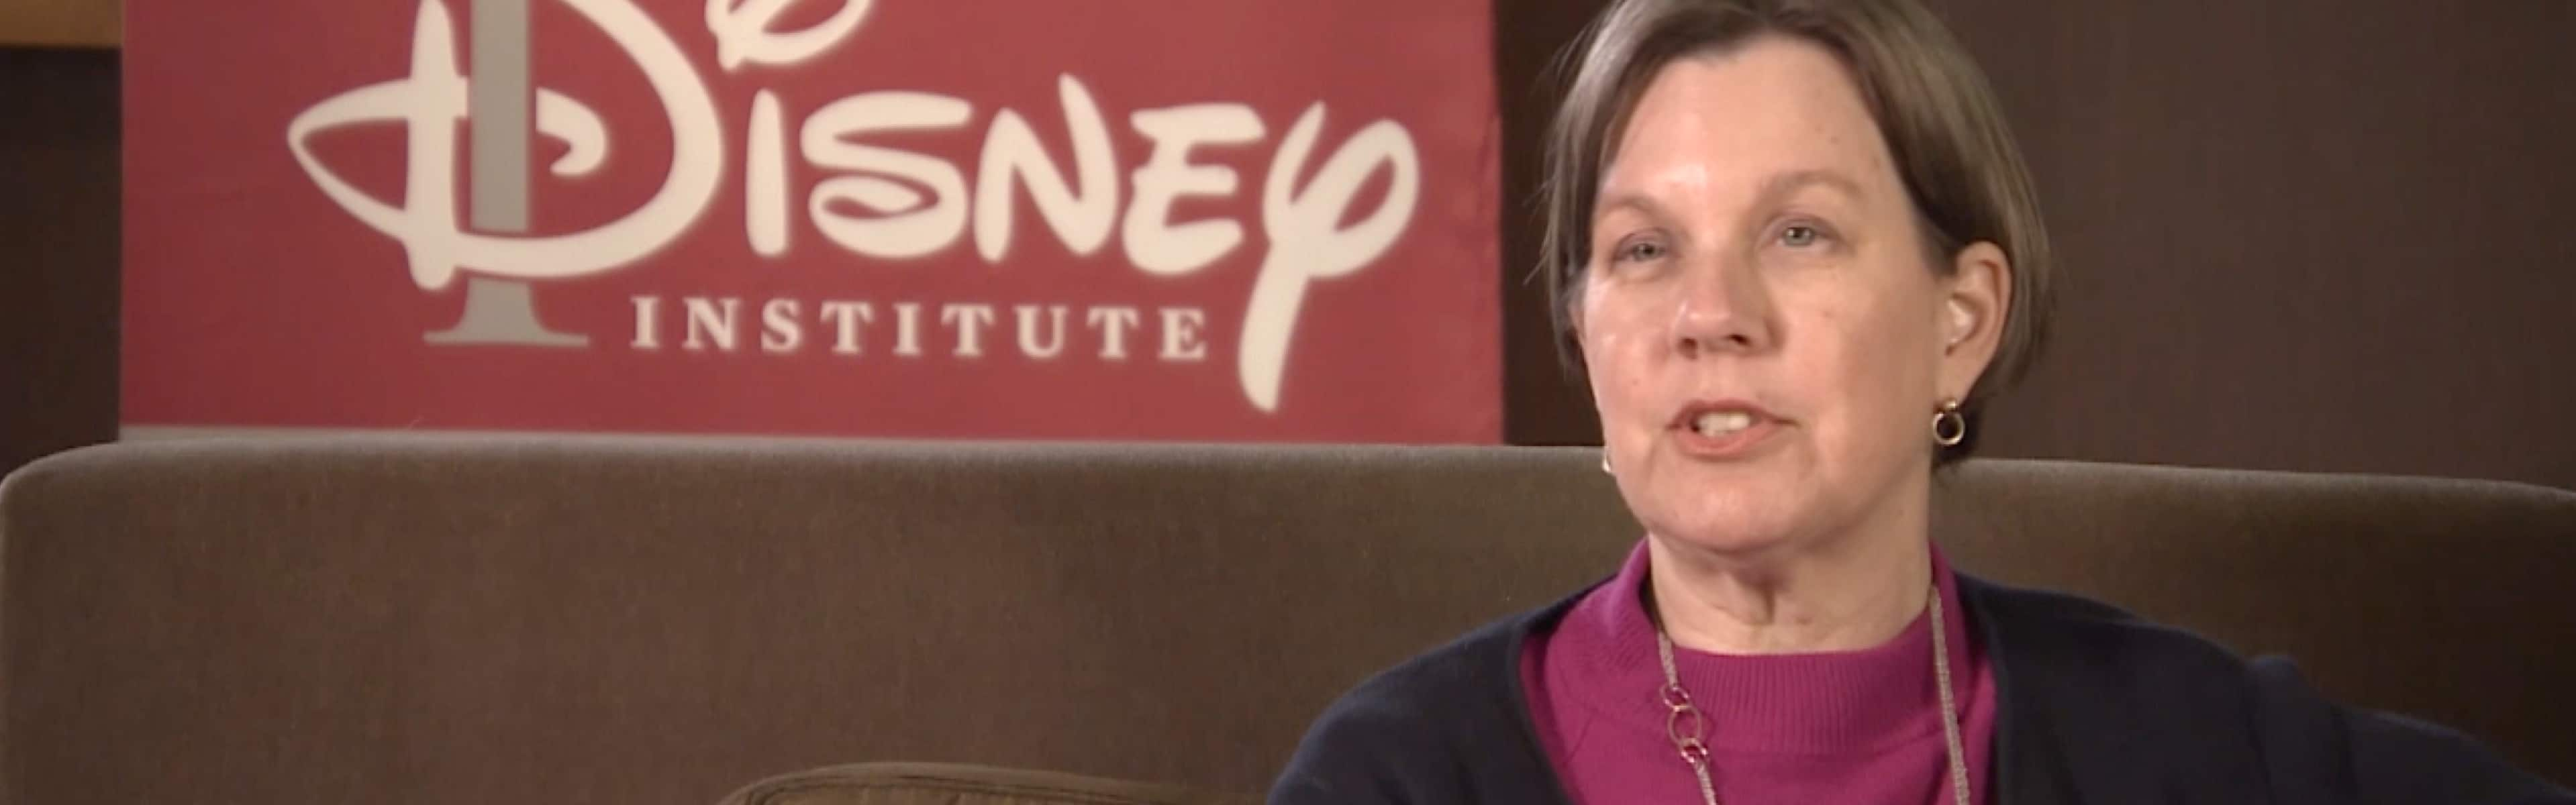 A talking woman seated on a couch in front of the Disney Institute sign